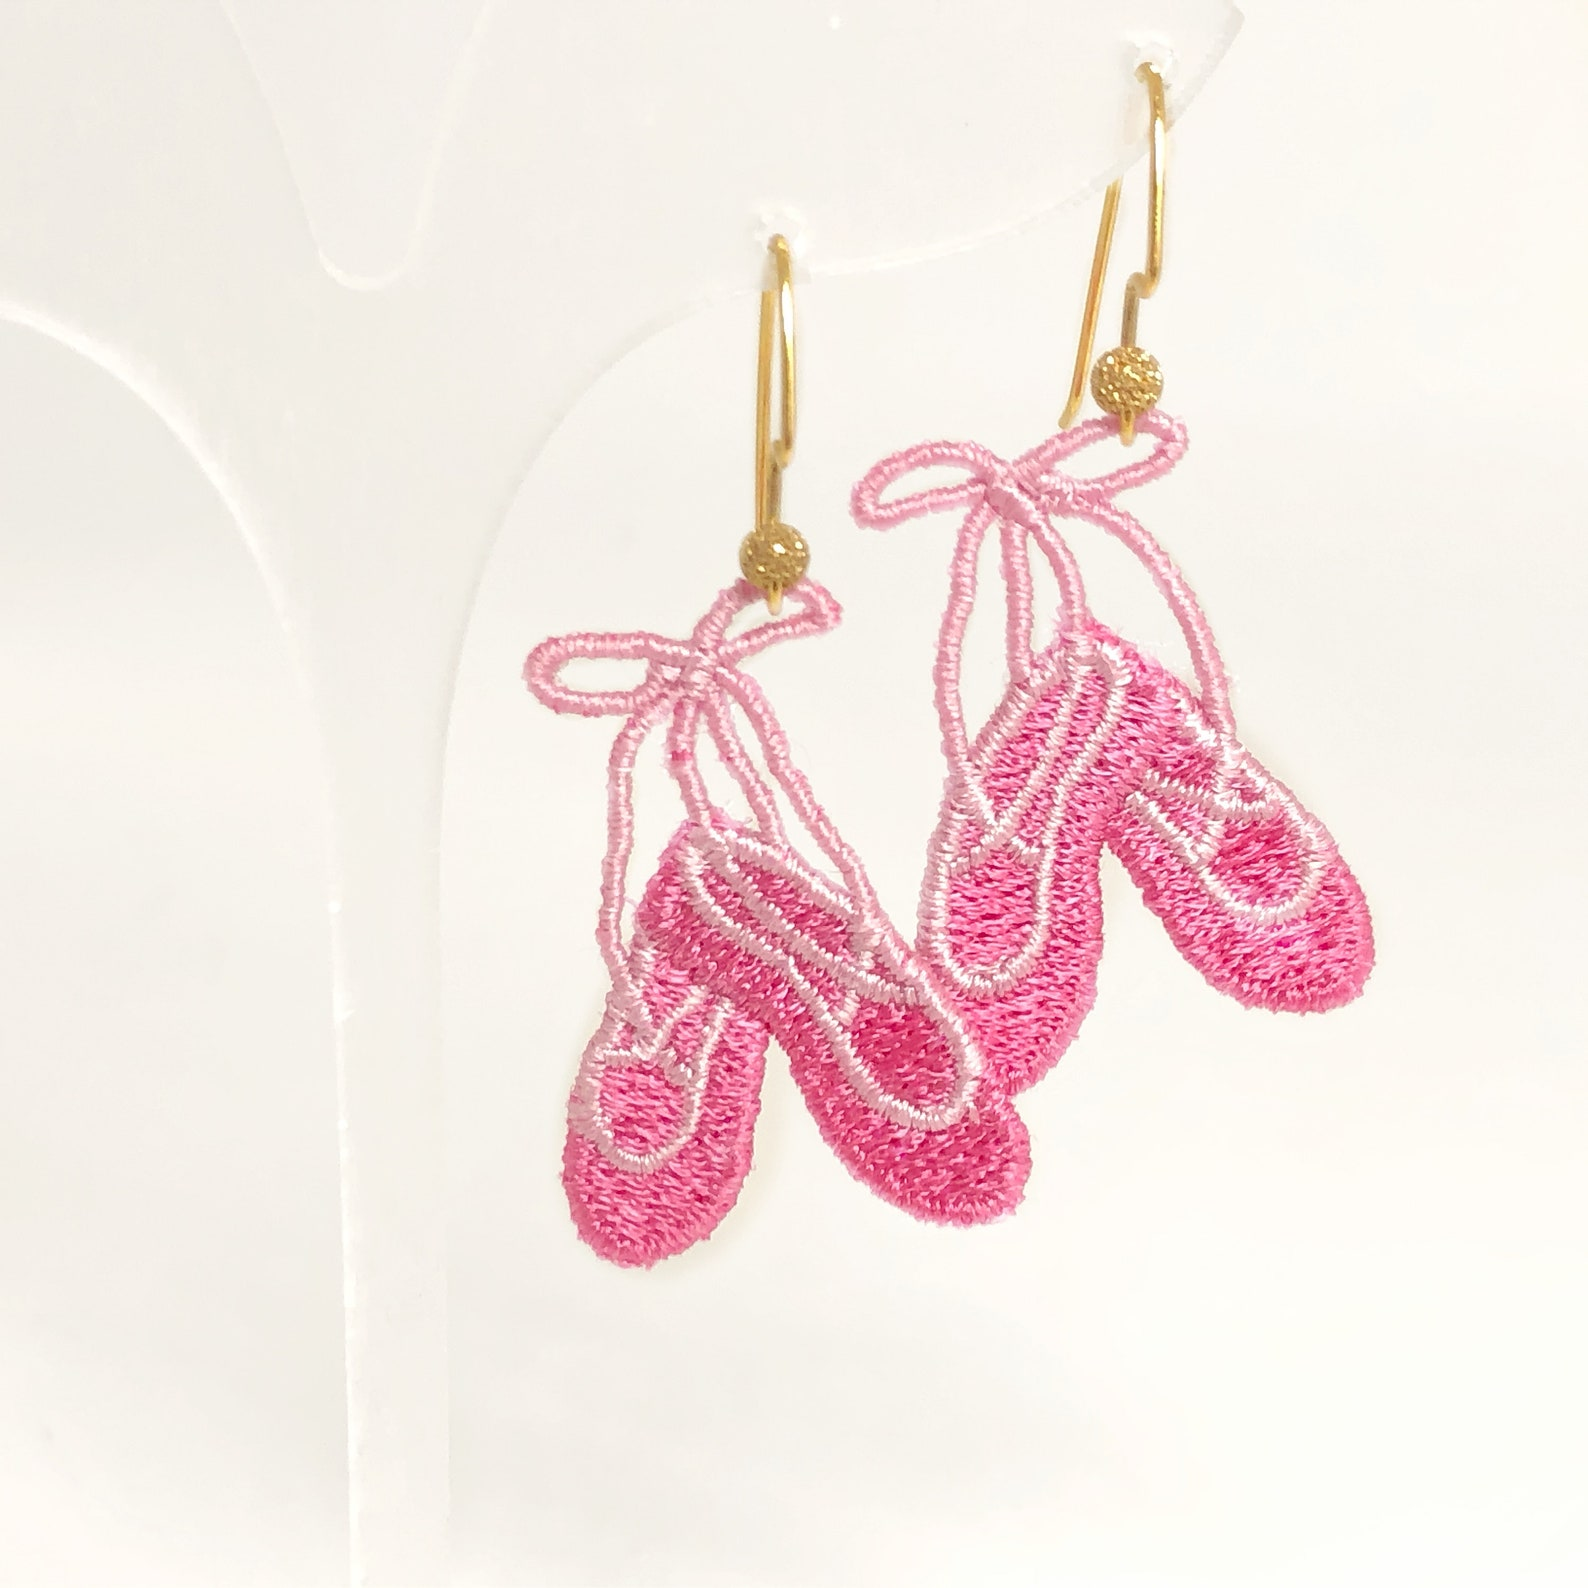 ballet shoes jewelry girls pointe earrings kids dance gifts ballerina earrings ballet dancer jewelry cute pink earrings lace lig